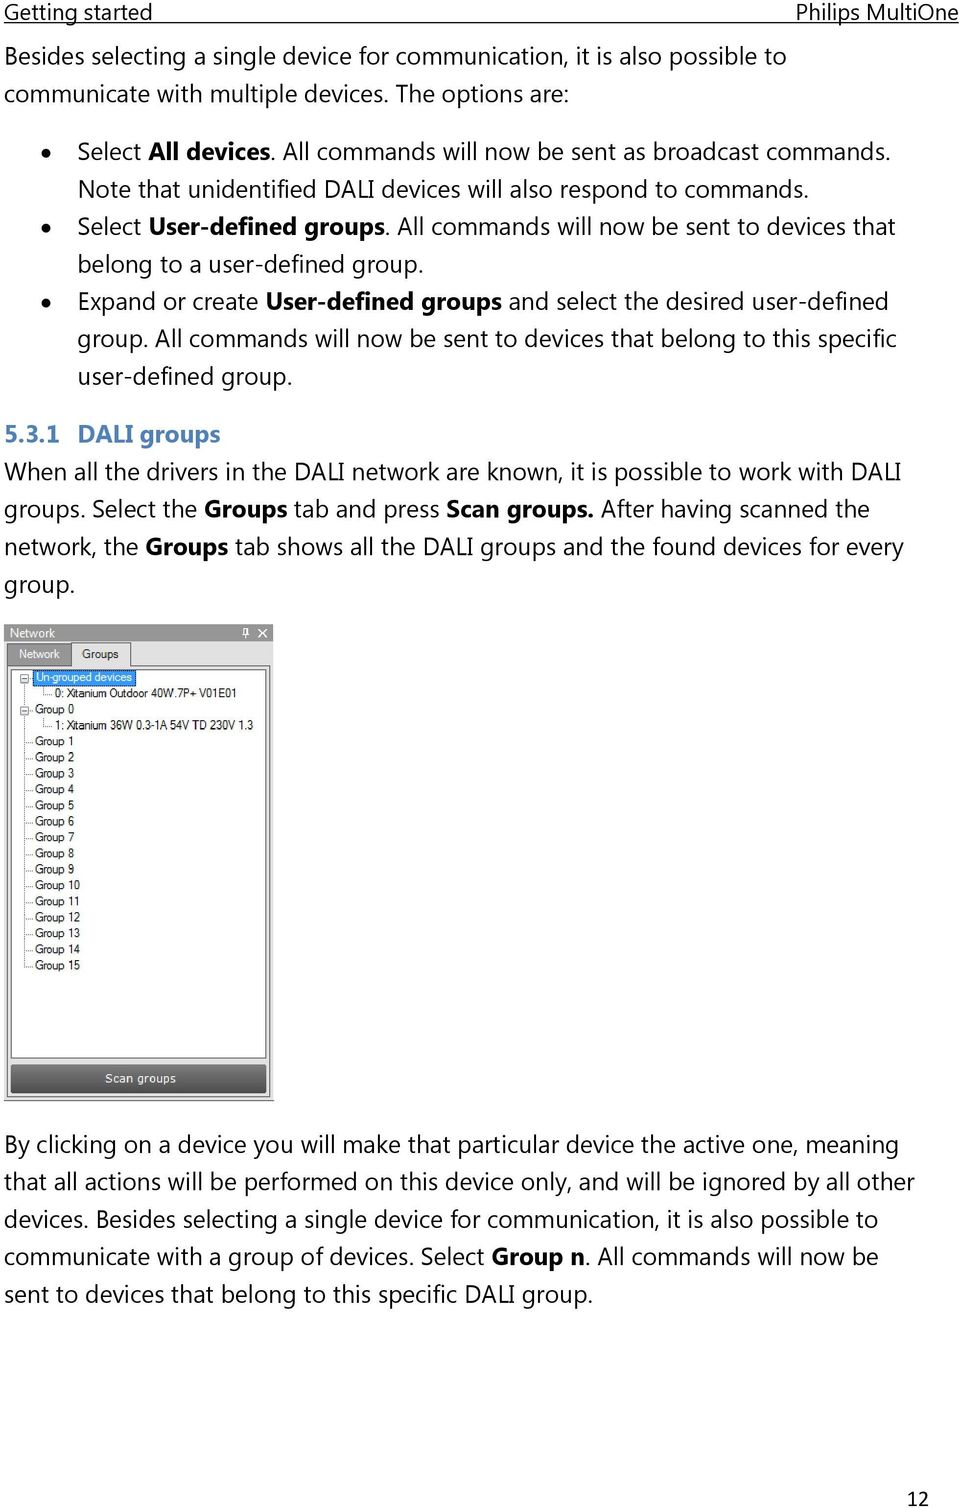 Expand or create User-defined groups and select the desired user-defined group. All commands will now be sent to devices that belong to this specific user-defined group. 5.3.